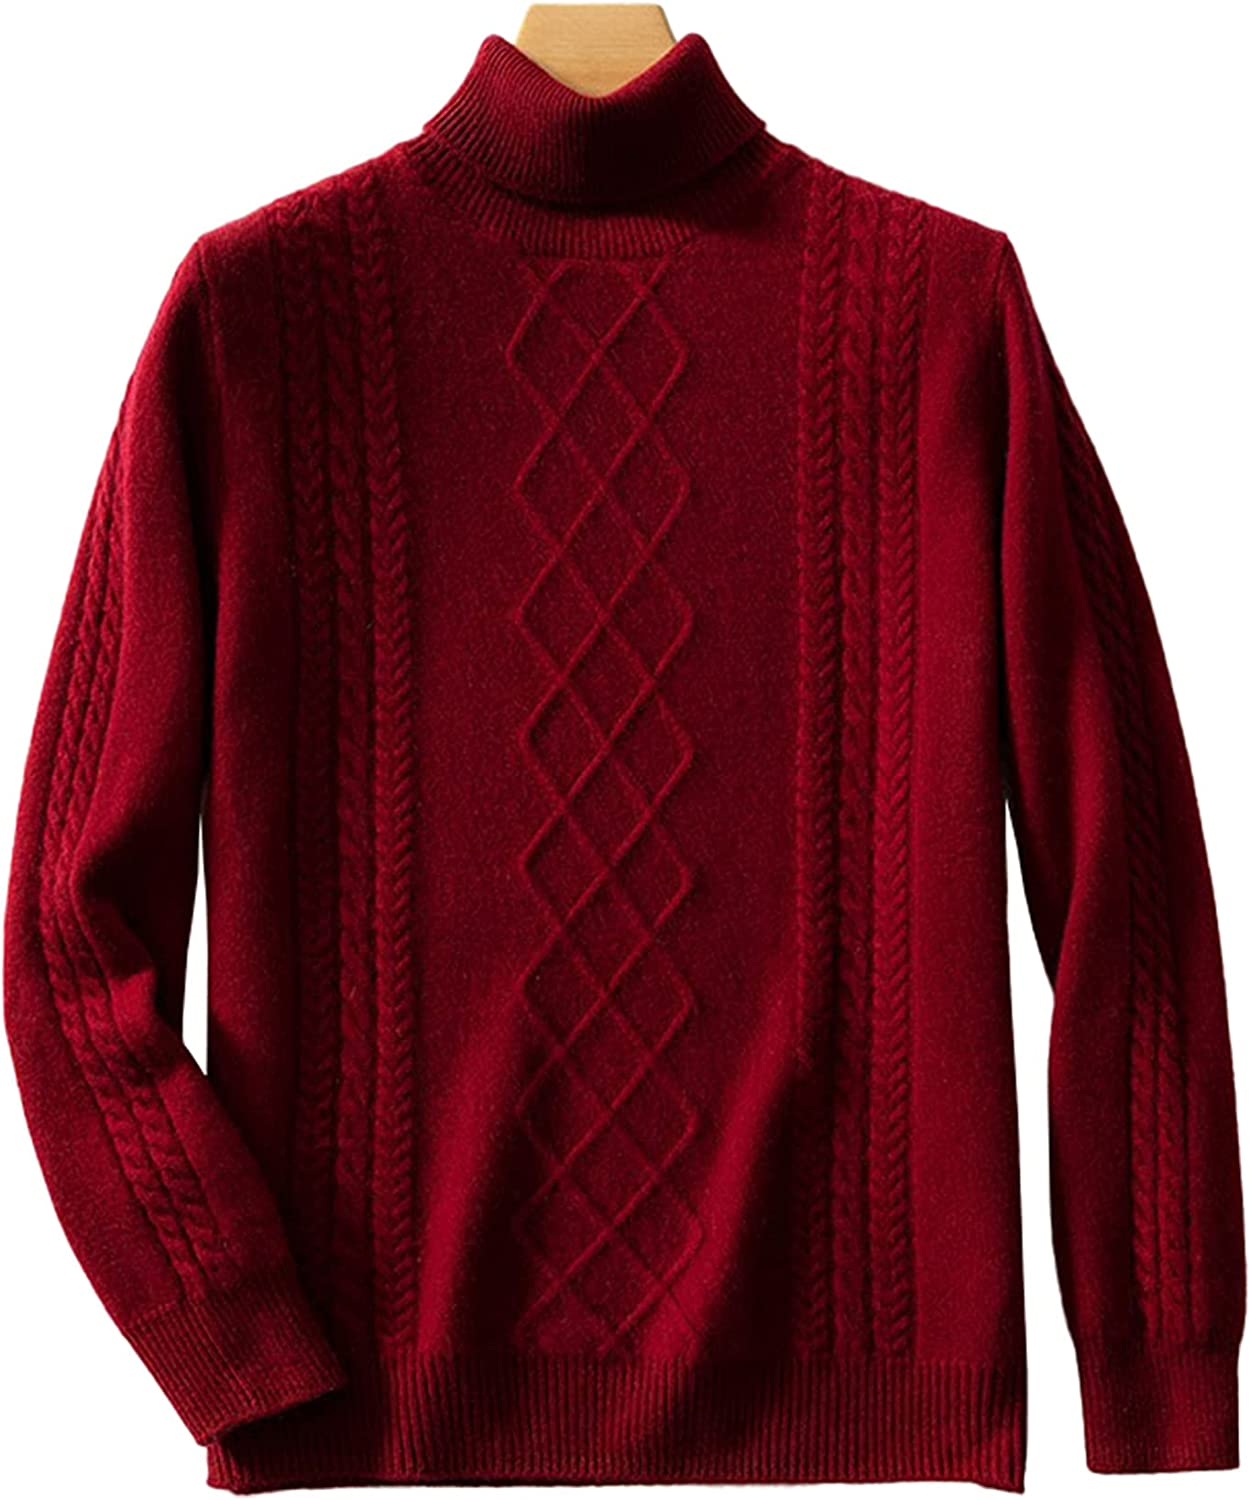 LZJDS Men's Turtleneck Cashmere Sweater Solid Color Twist Thicken Mid-Length Casual Pullover Outwear Daily